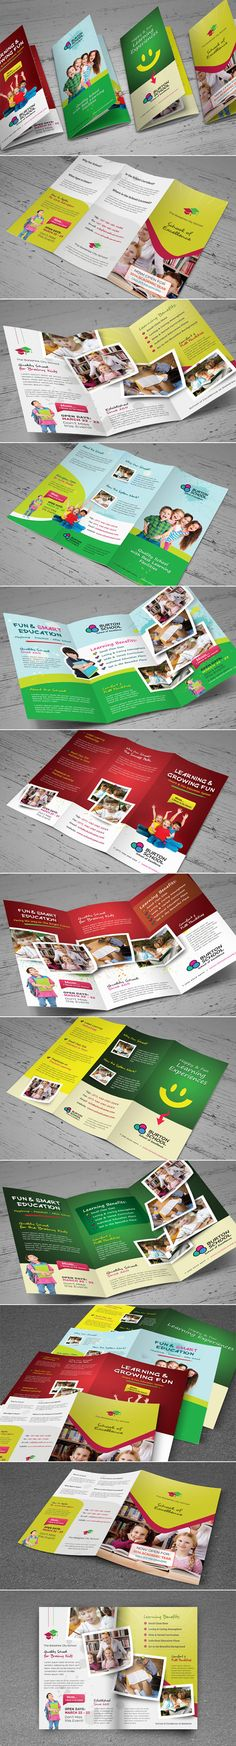 Educational Brochure for schools Brochures for your Professional Corporate Business (25 Designs)